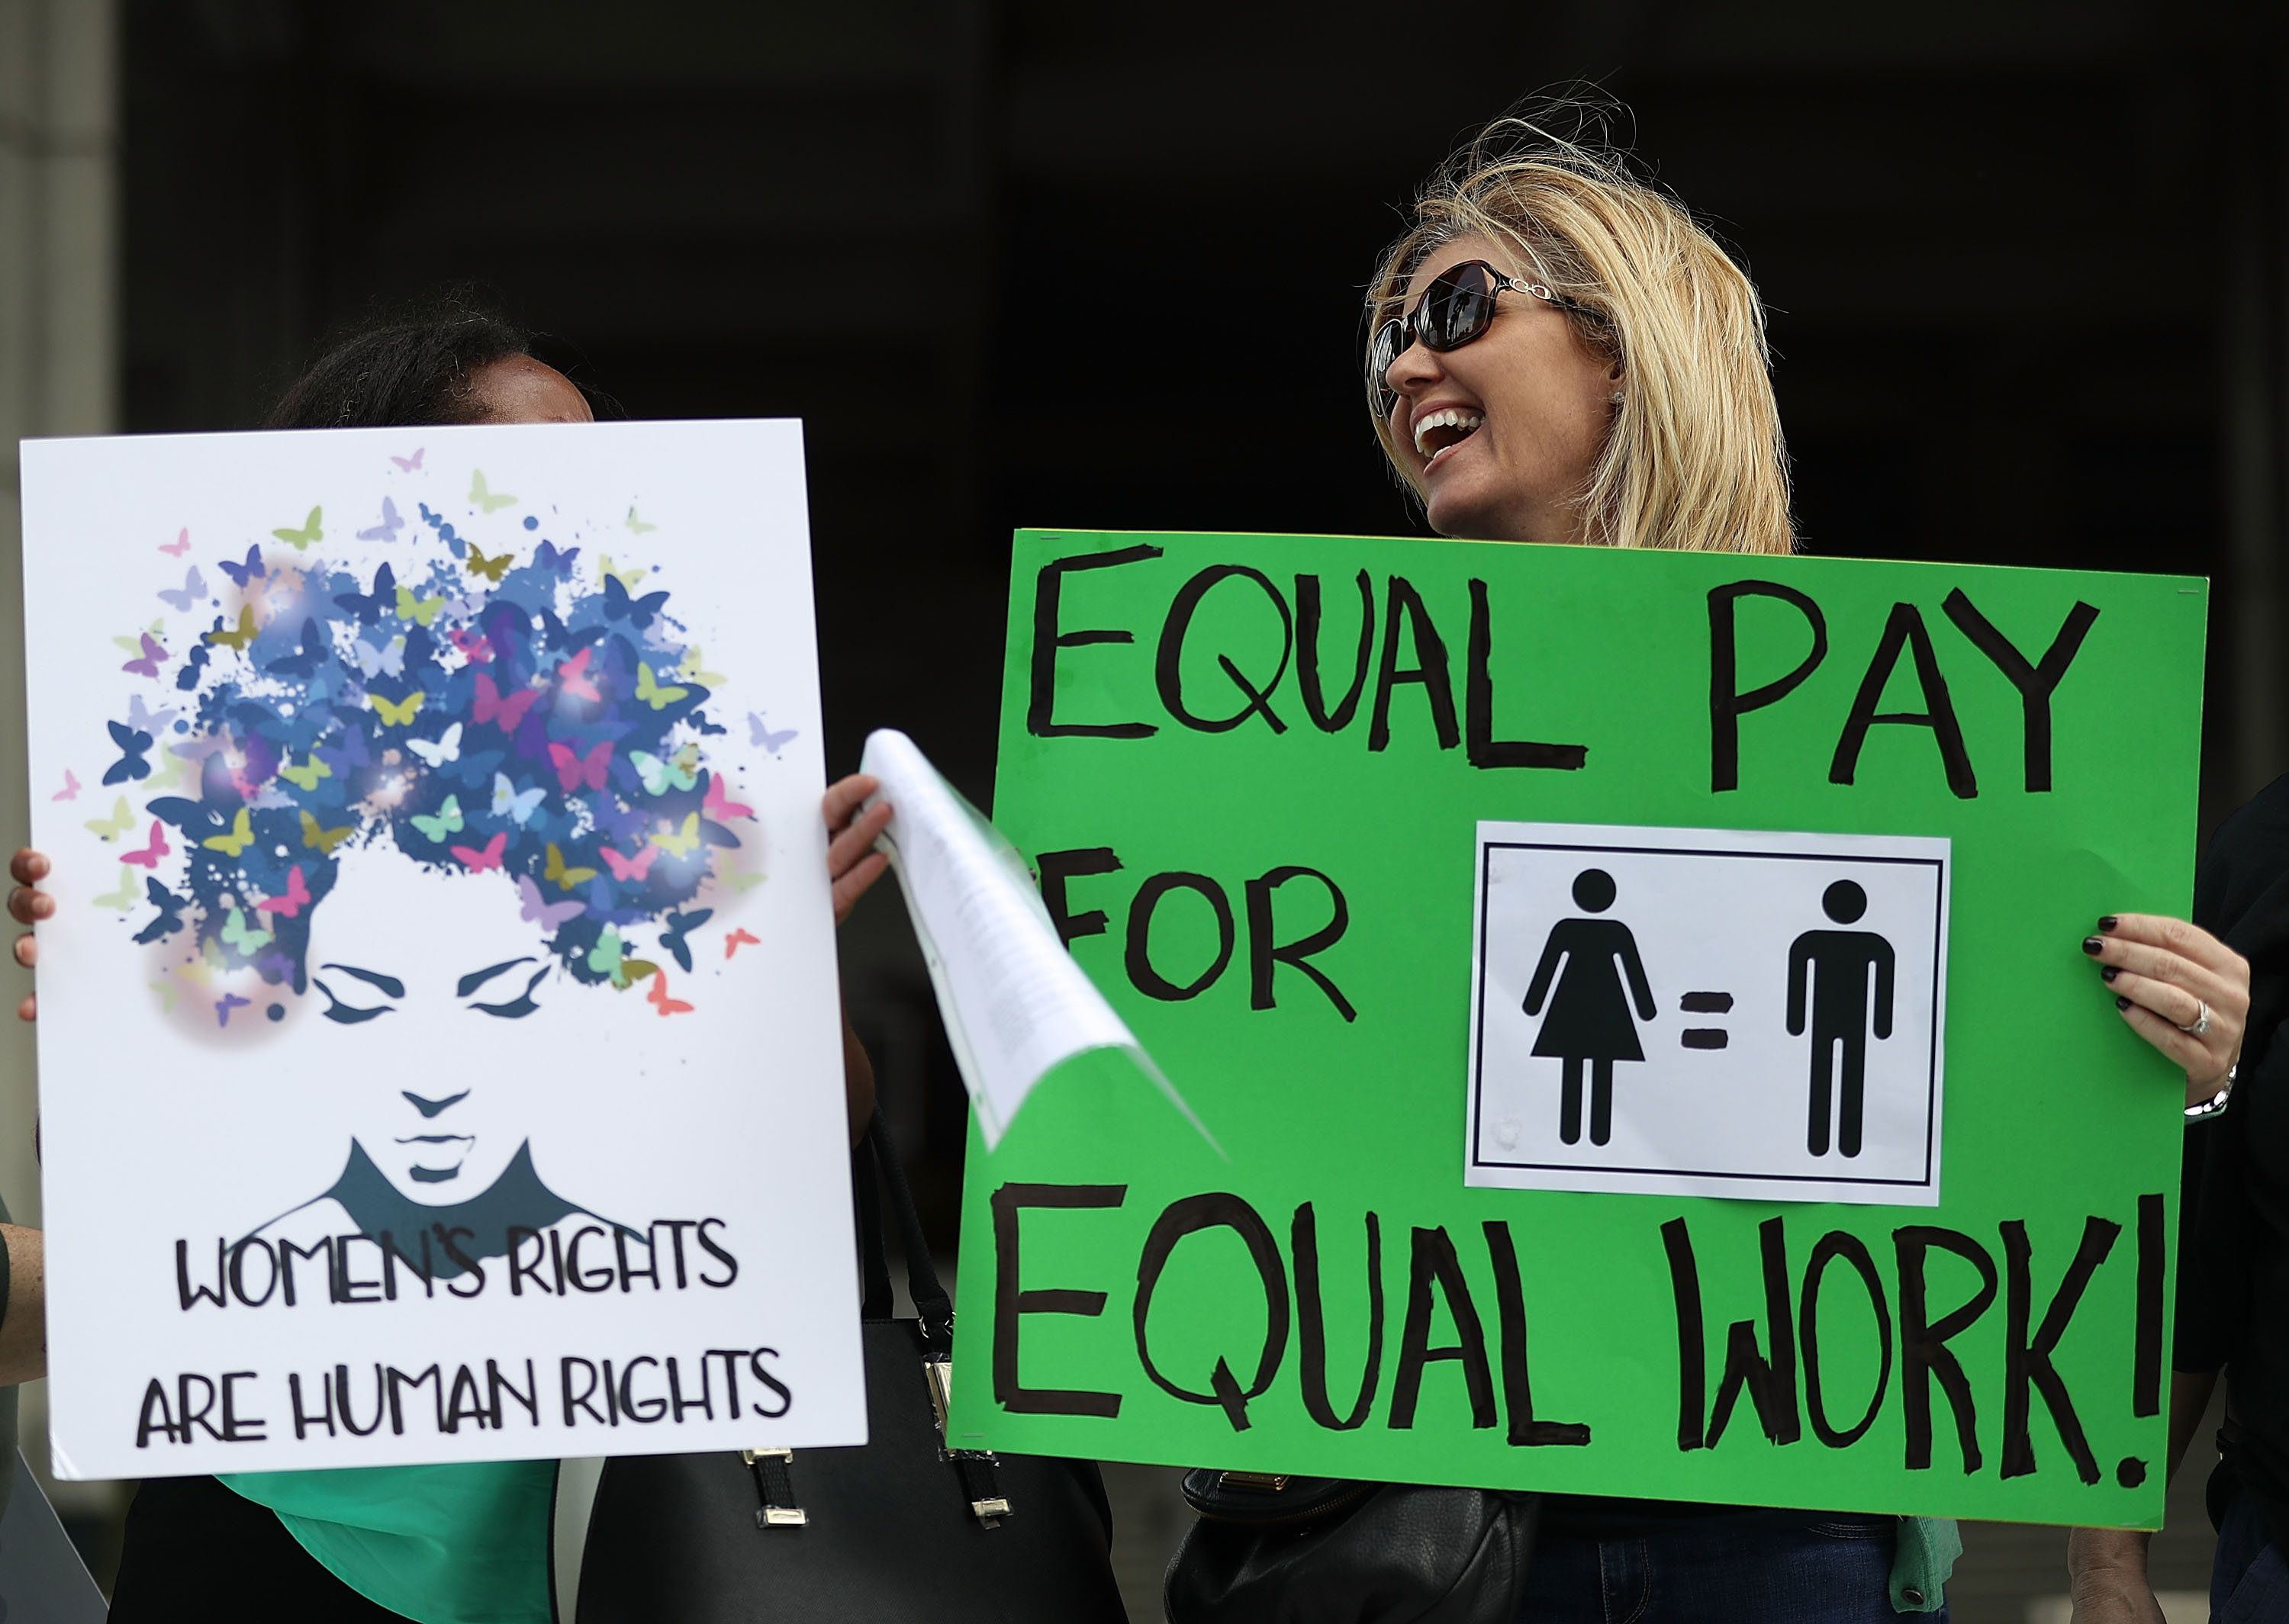 FORT LAUDERDALE, FL - MARCH 14:  Elana Goodman joins with other protesters to ask that woman be given the chance to have equal pay as their male co-workers on March 14, 2017 in Fort Lauderdale, Florida. The protest was held as the legislation in the state of Florida looks at passing the Helen Gordon Davis fair pay protection act that would strengthen state laws in terms of equal pay.  (Photo by Joe Raedle/Getty Images)